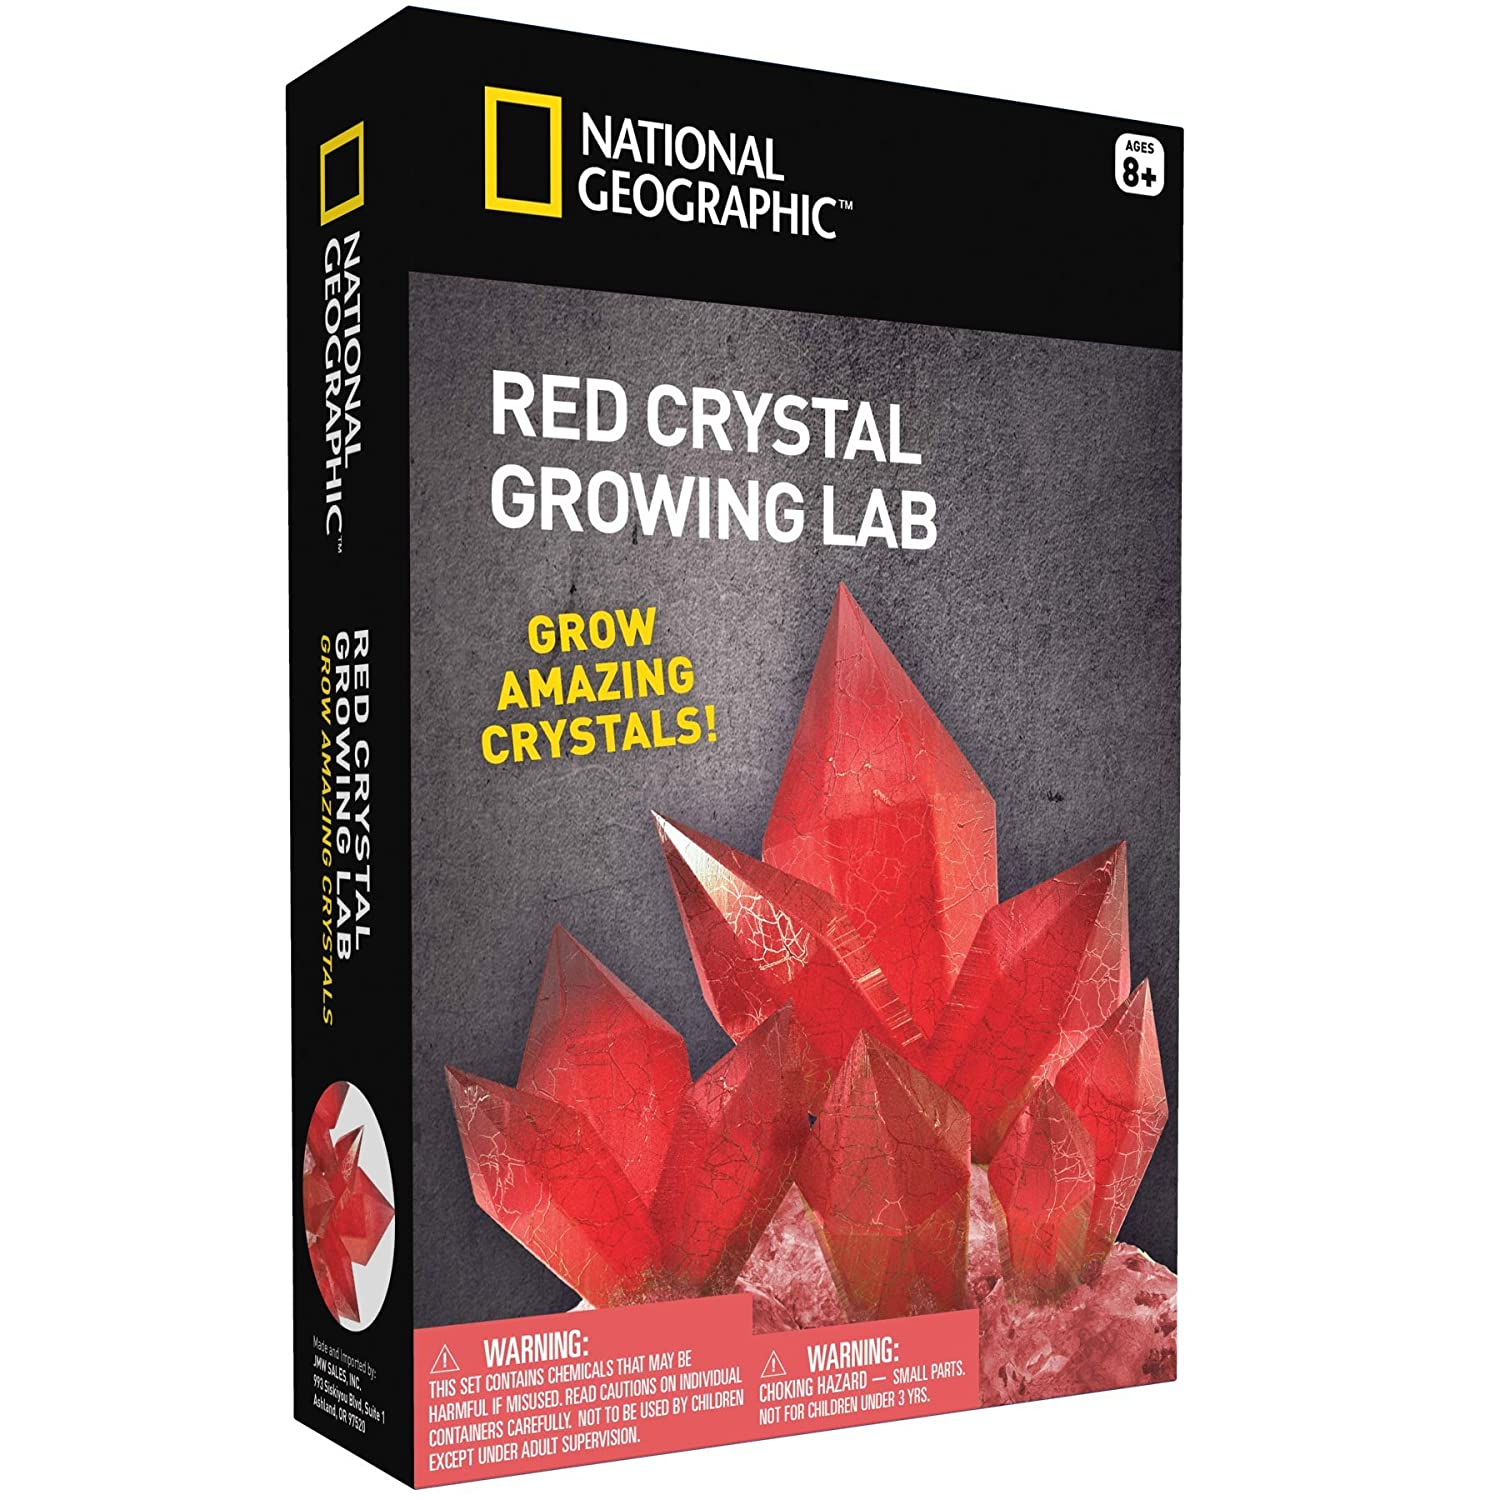 Aragonite Crystal Growing Kit – Grow Red Crystals with NATIONAL GEOGRAPHIC | eBay